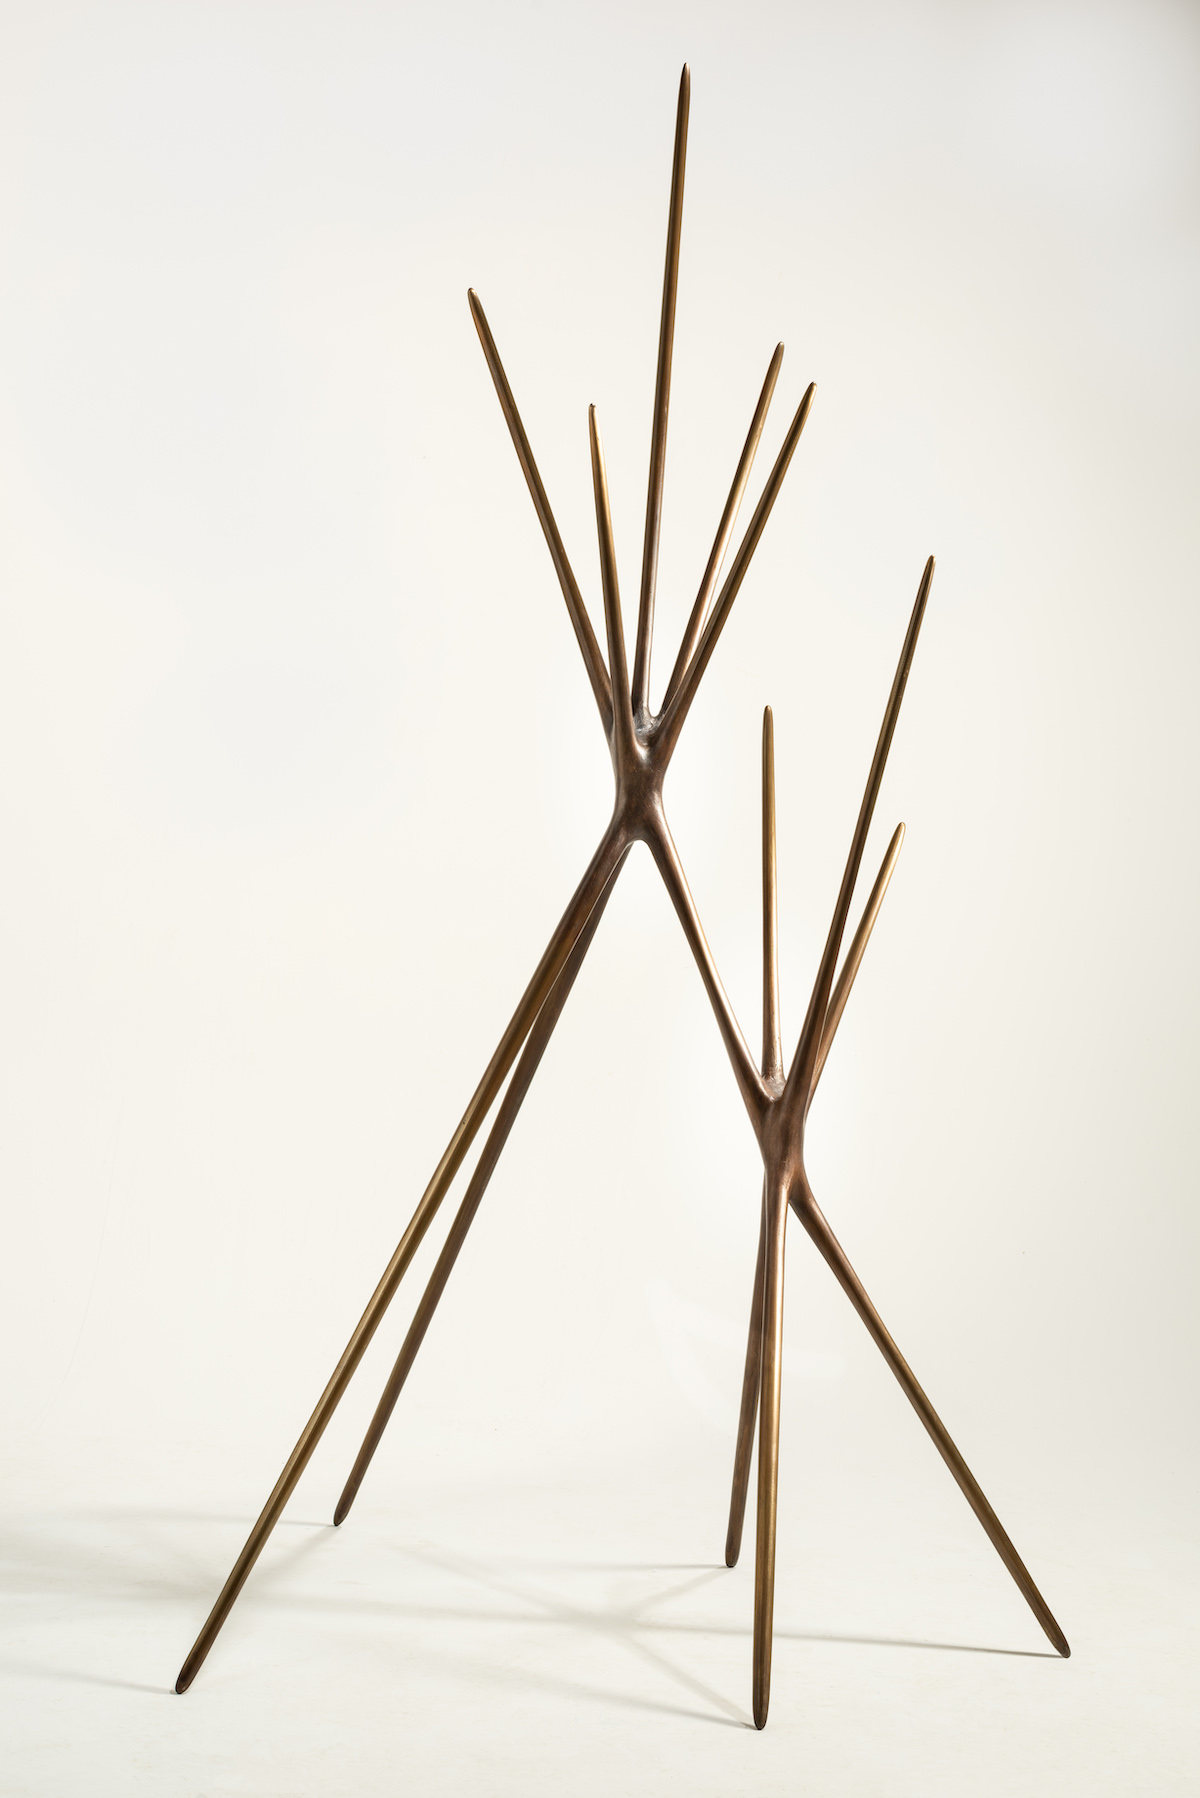 side view of Untitled (Standing Sculpture) by Christopher Kurtz